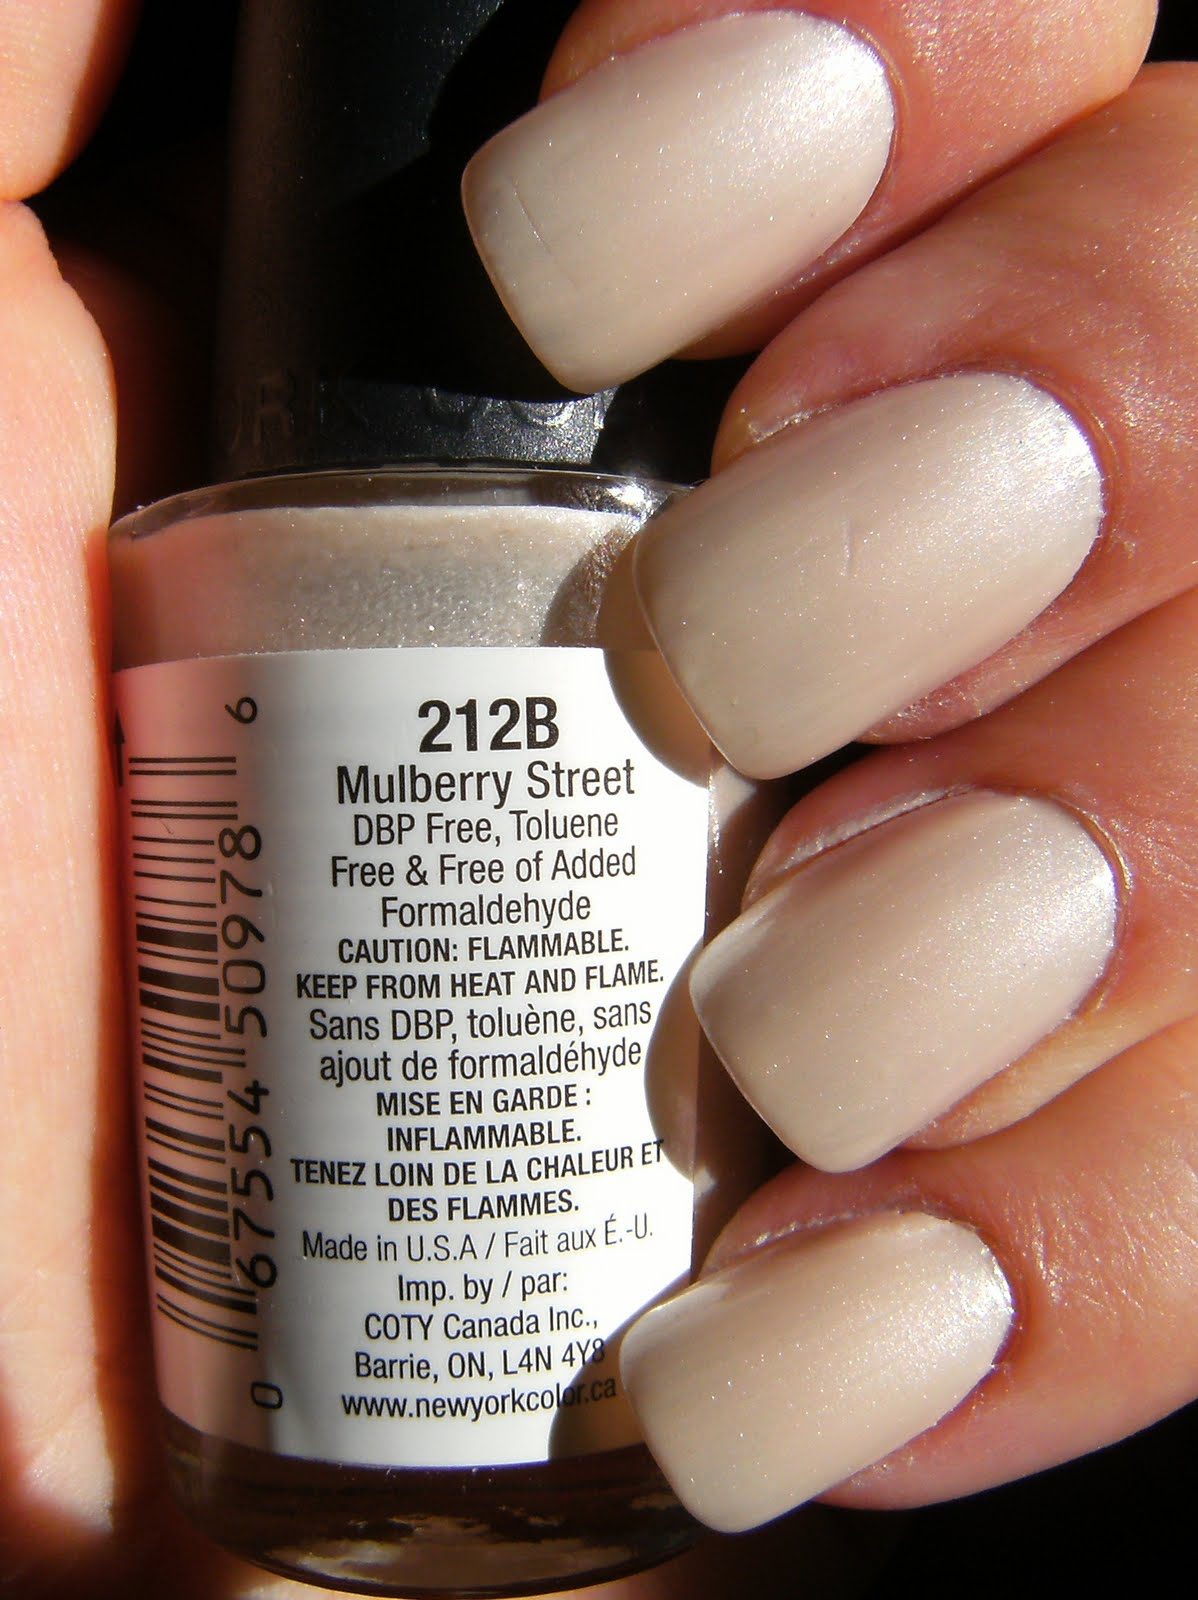 Nyc Nail Polish 3 Free - CrossfitHPU